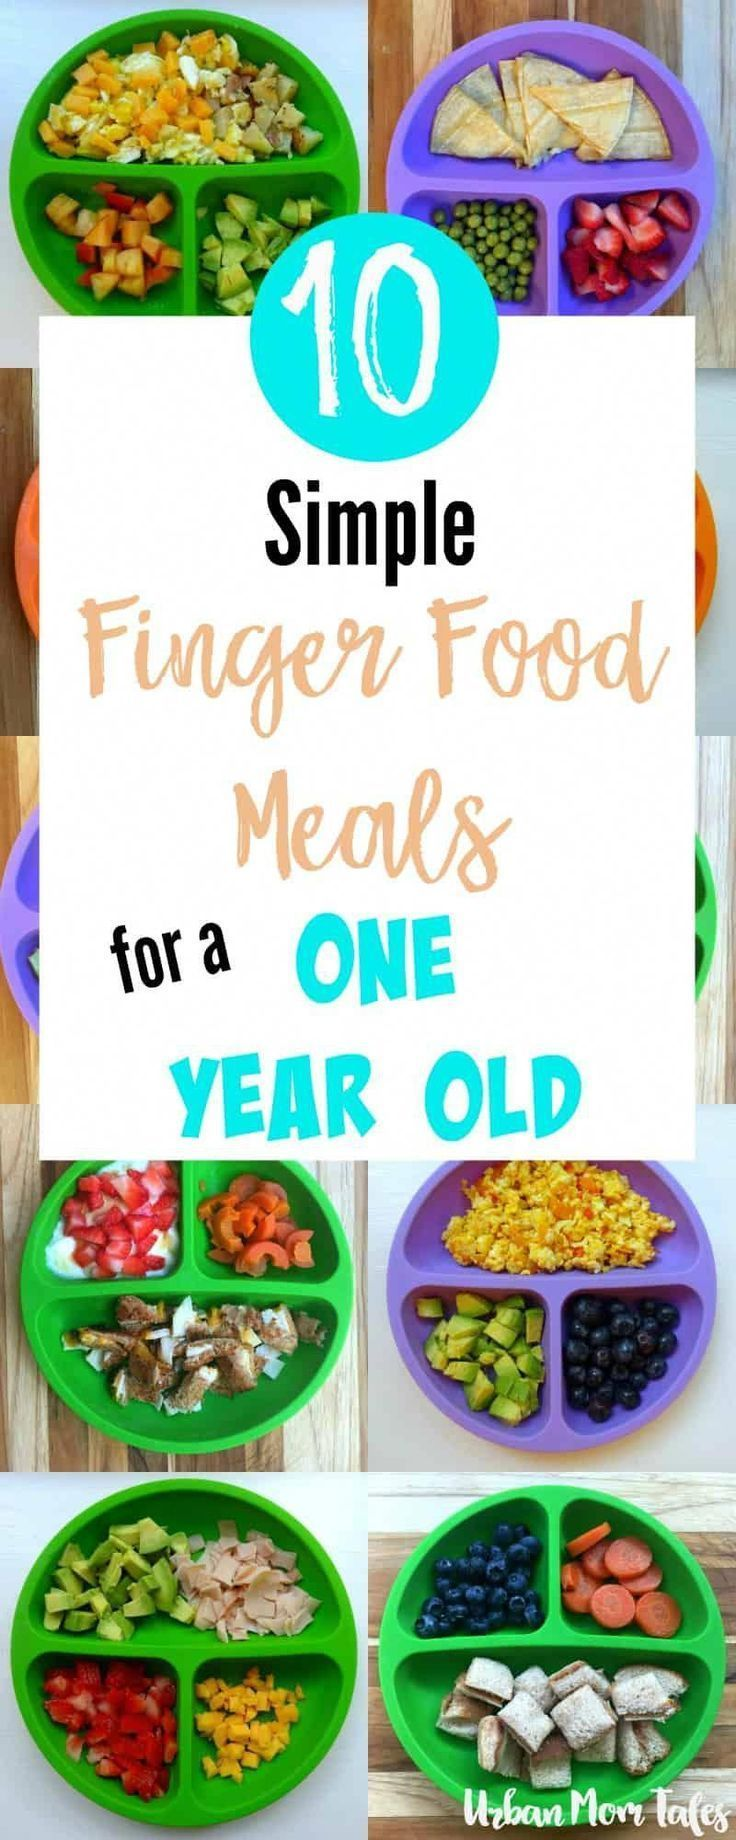 Single parenting  #sweet  #potato  #recipes  #finger  #foods sweet potato recipes for baby finger foods, 9 month old baby finger food, snacks for toddlers baby finger foods, baby finger foods 9 months, baby finger foods lunch, easy baby finger foods, baby finger food ideas, meals for 9 month old baby finger foods #childnutrition